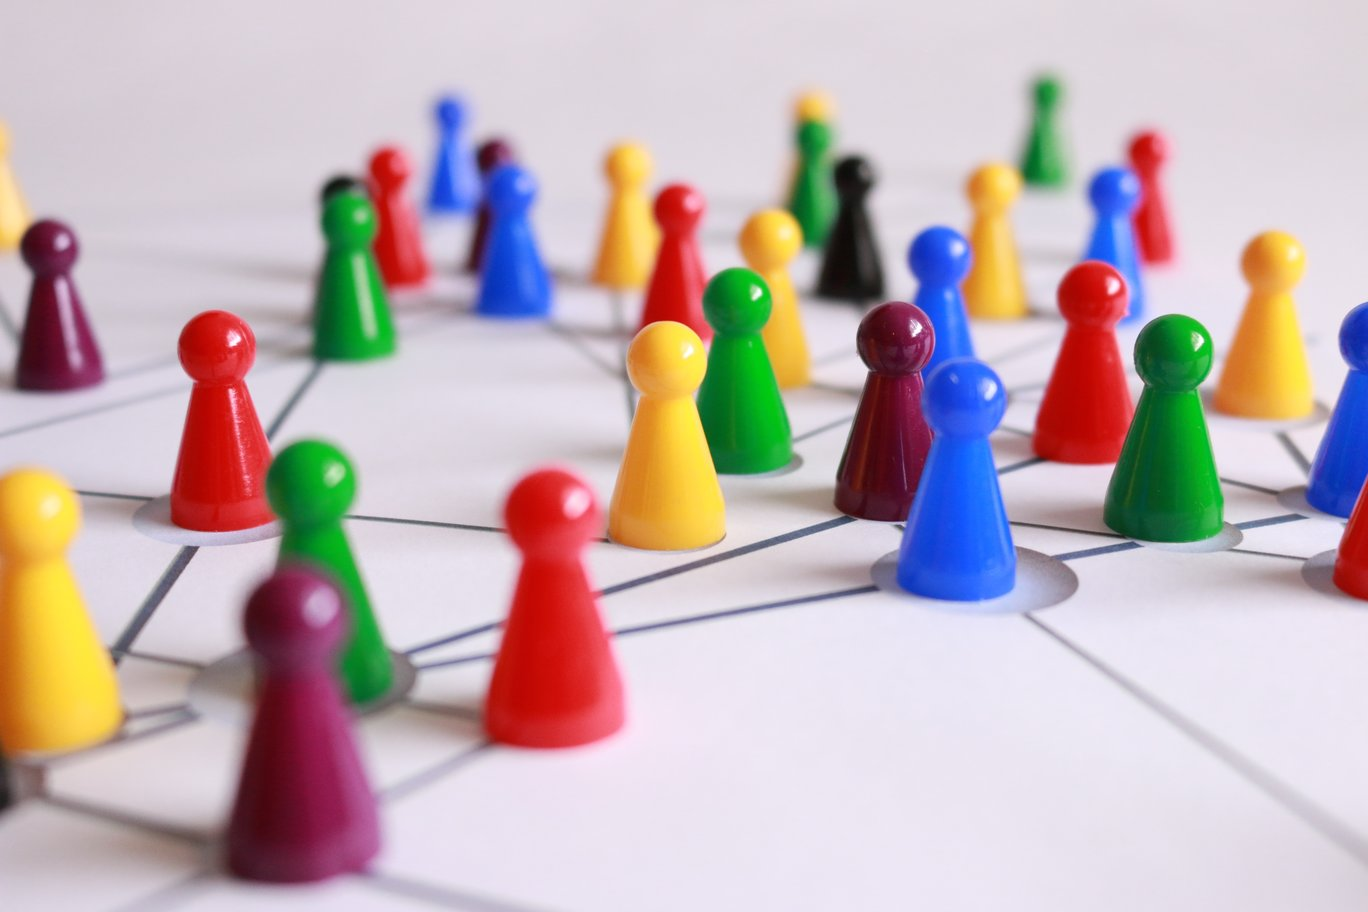 Strategic Networking is the best strategy to establish yourself in the business world